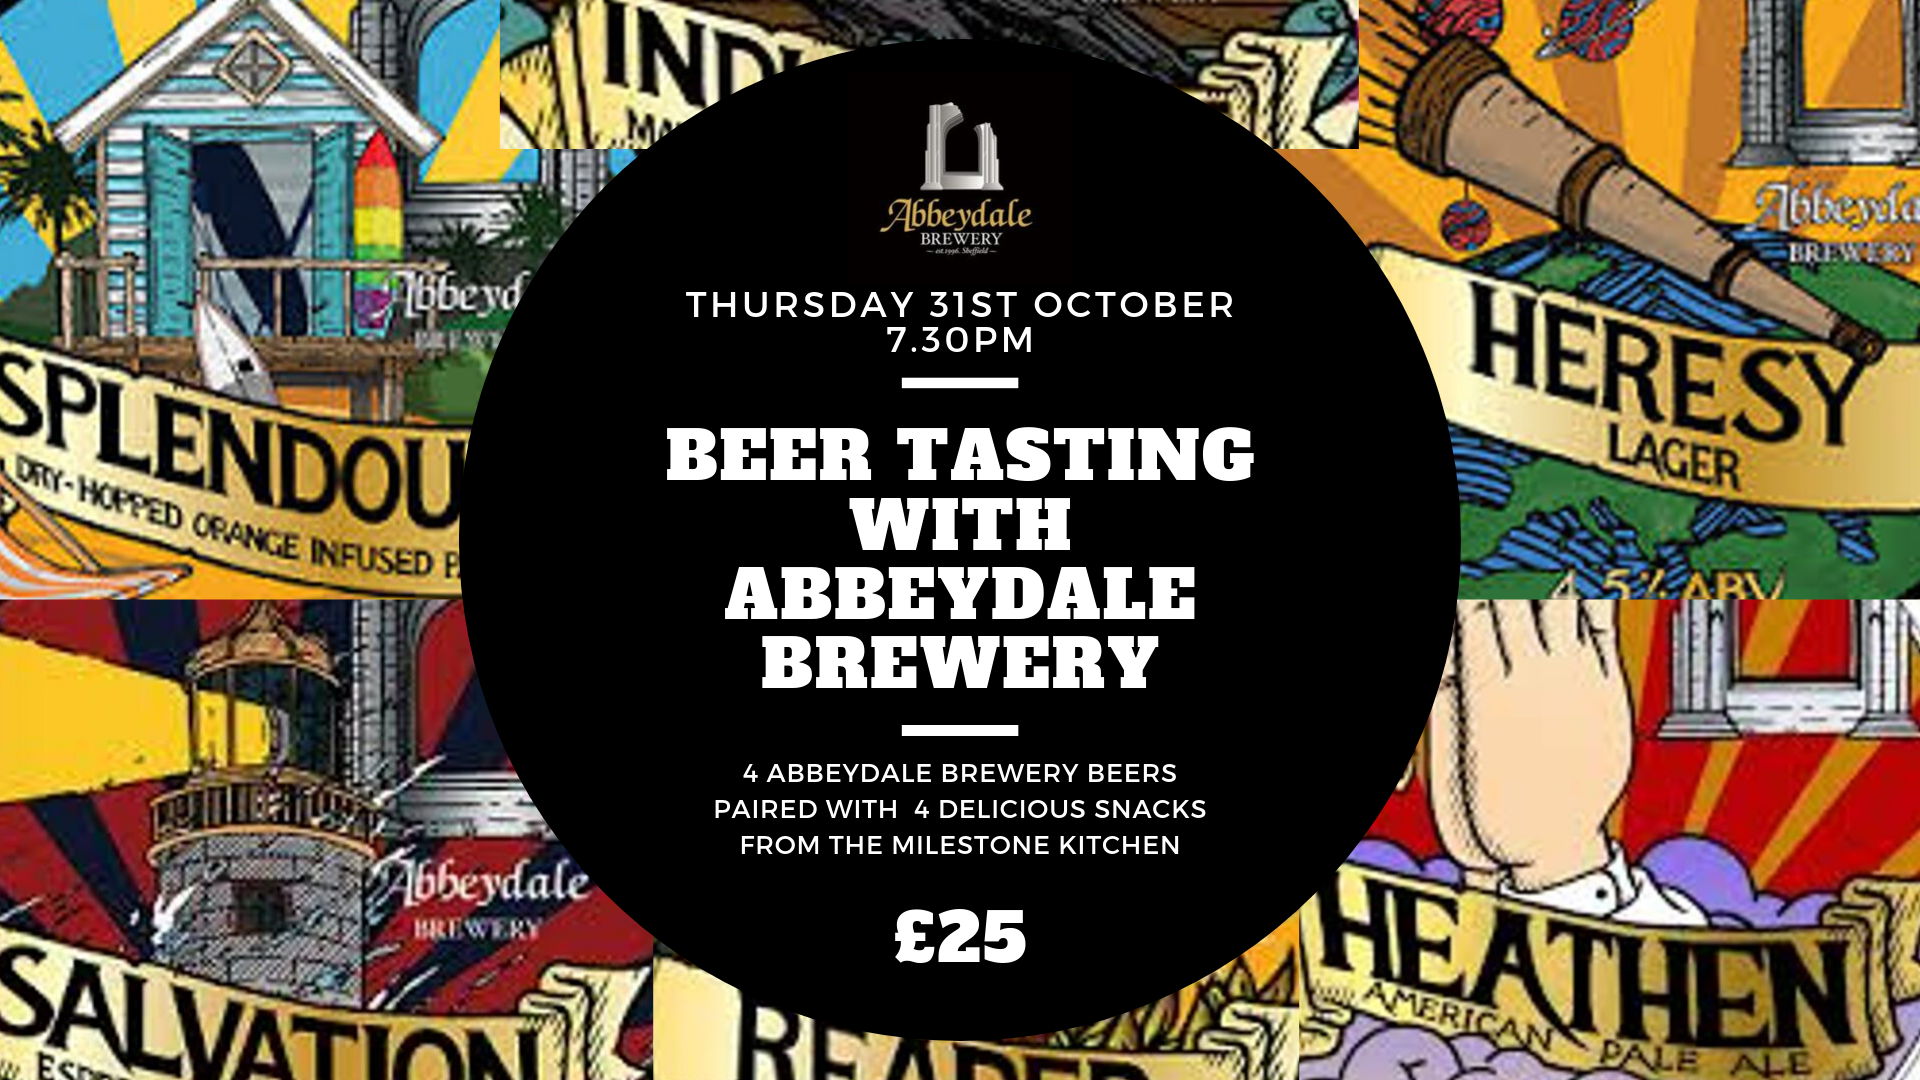 October 31st: Beer Tasting with Abbeydale Brewery